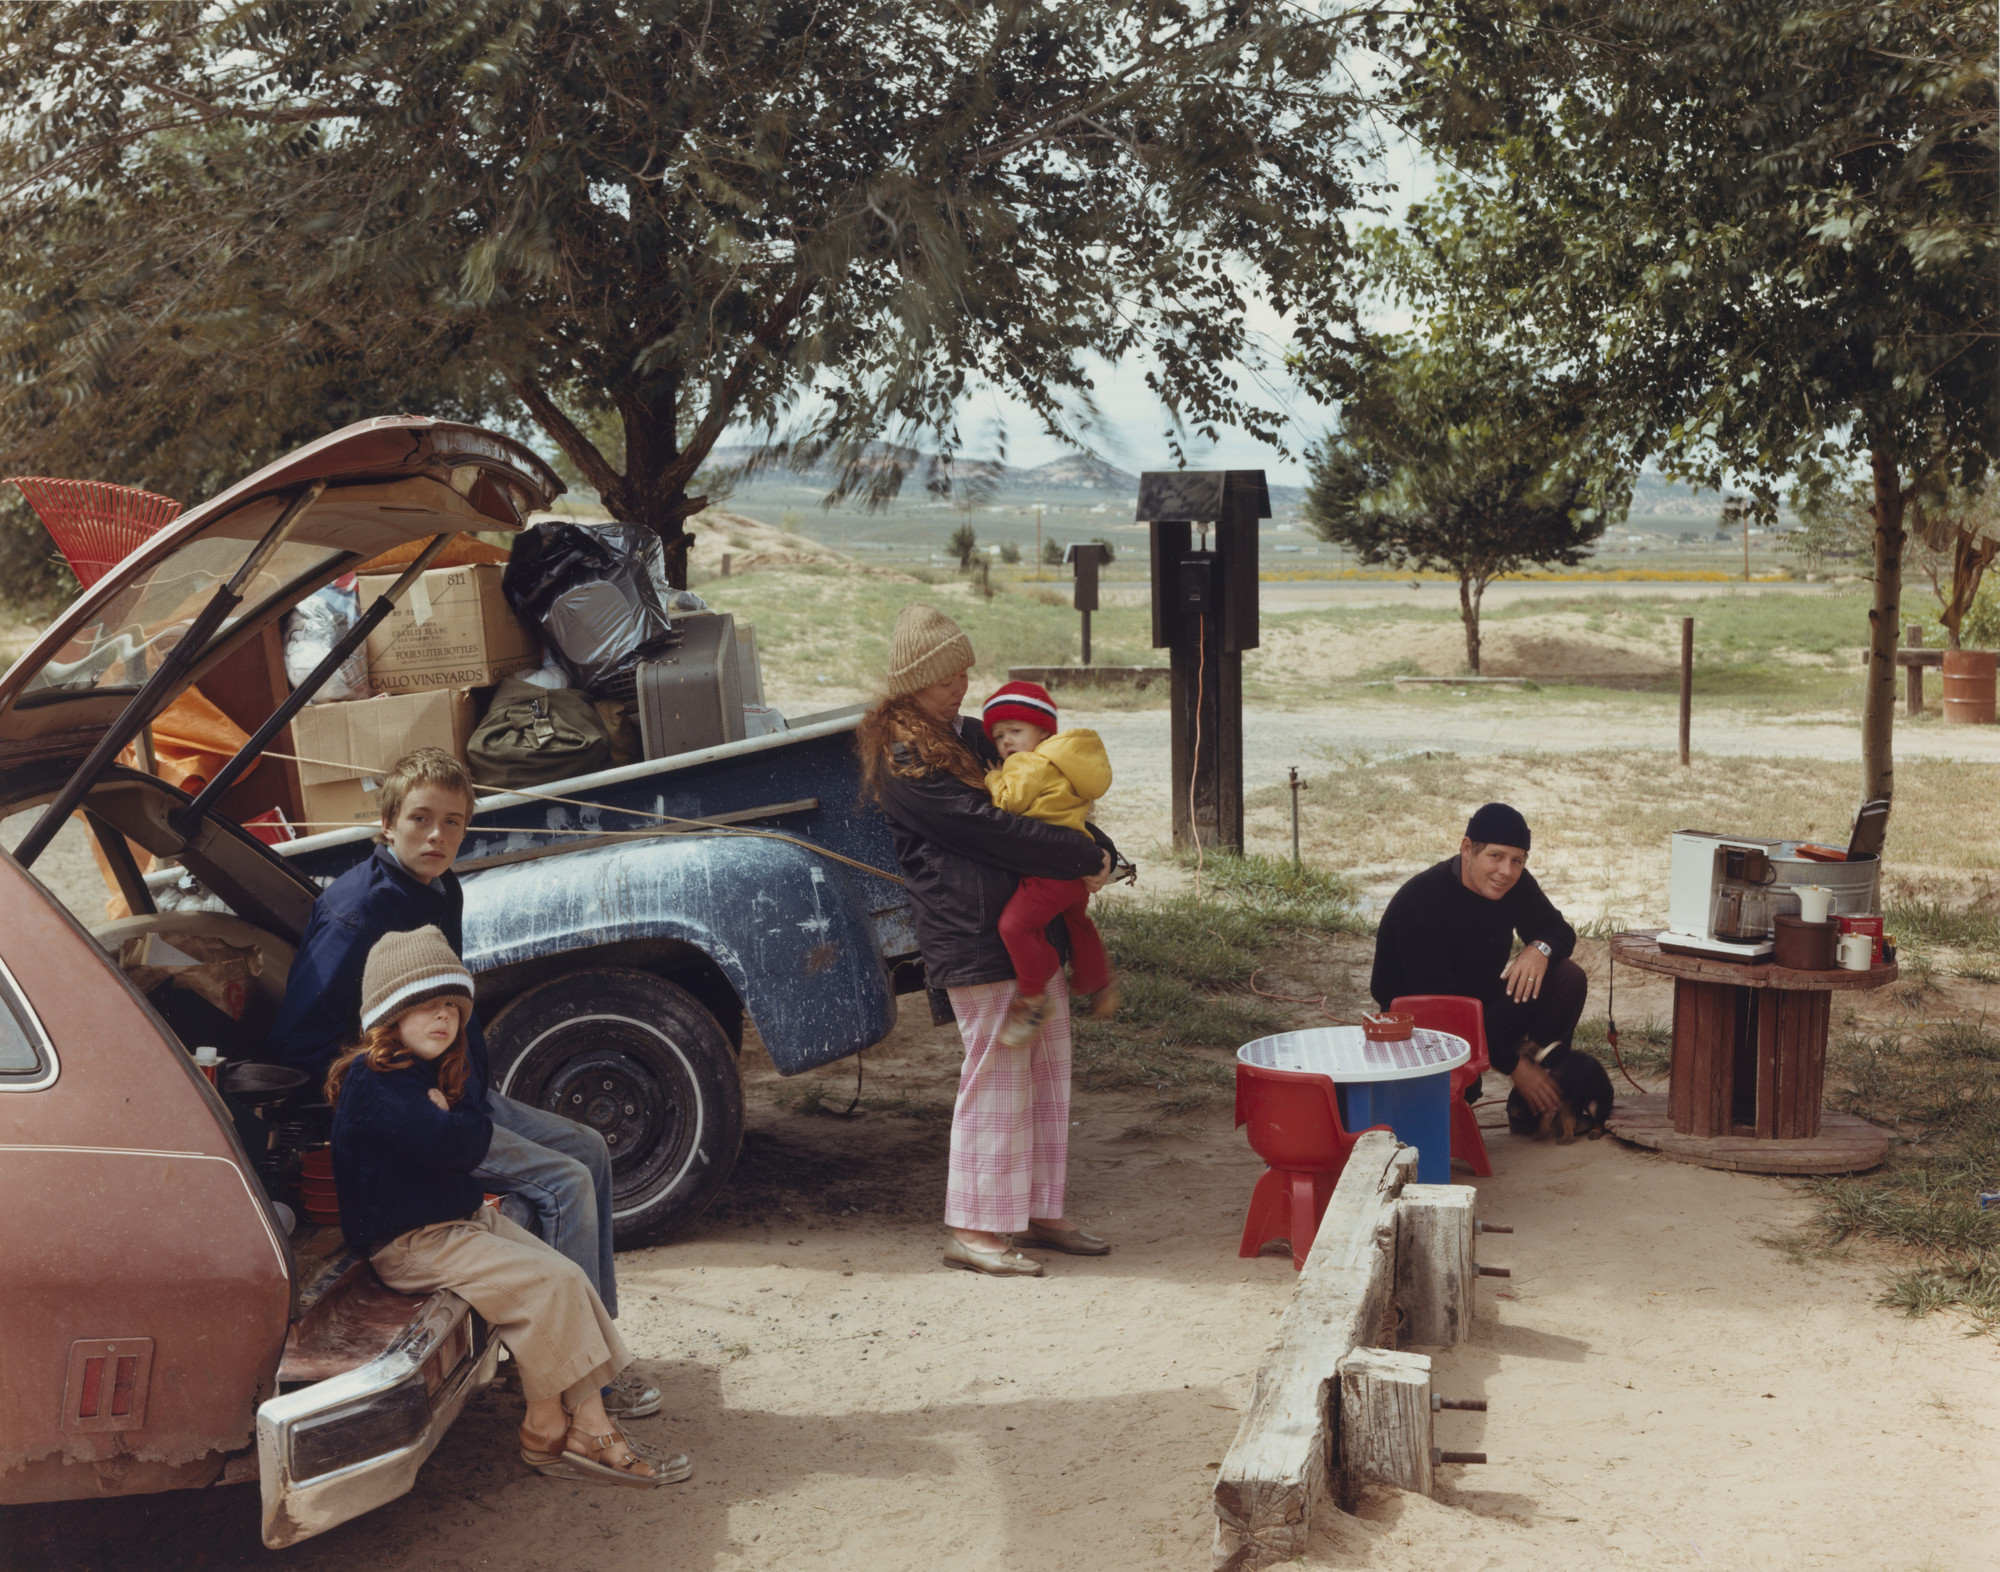 Joel Sternfeld. Red Rock State Campground, Gallup, New Mexico ...